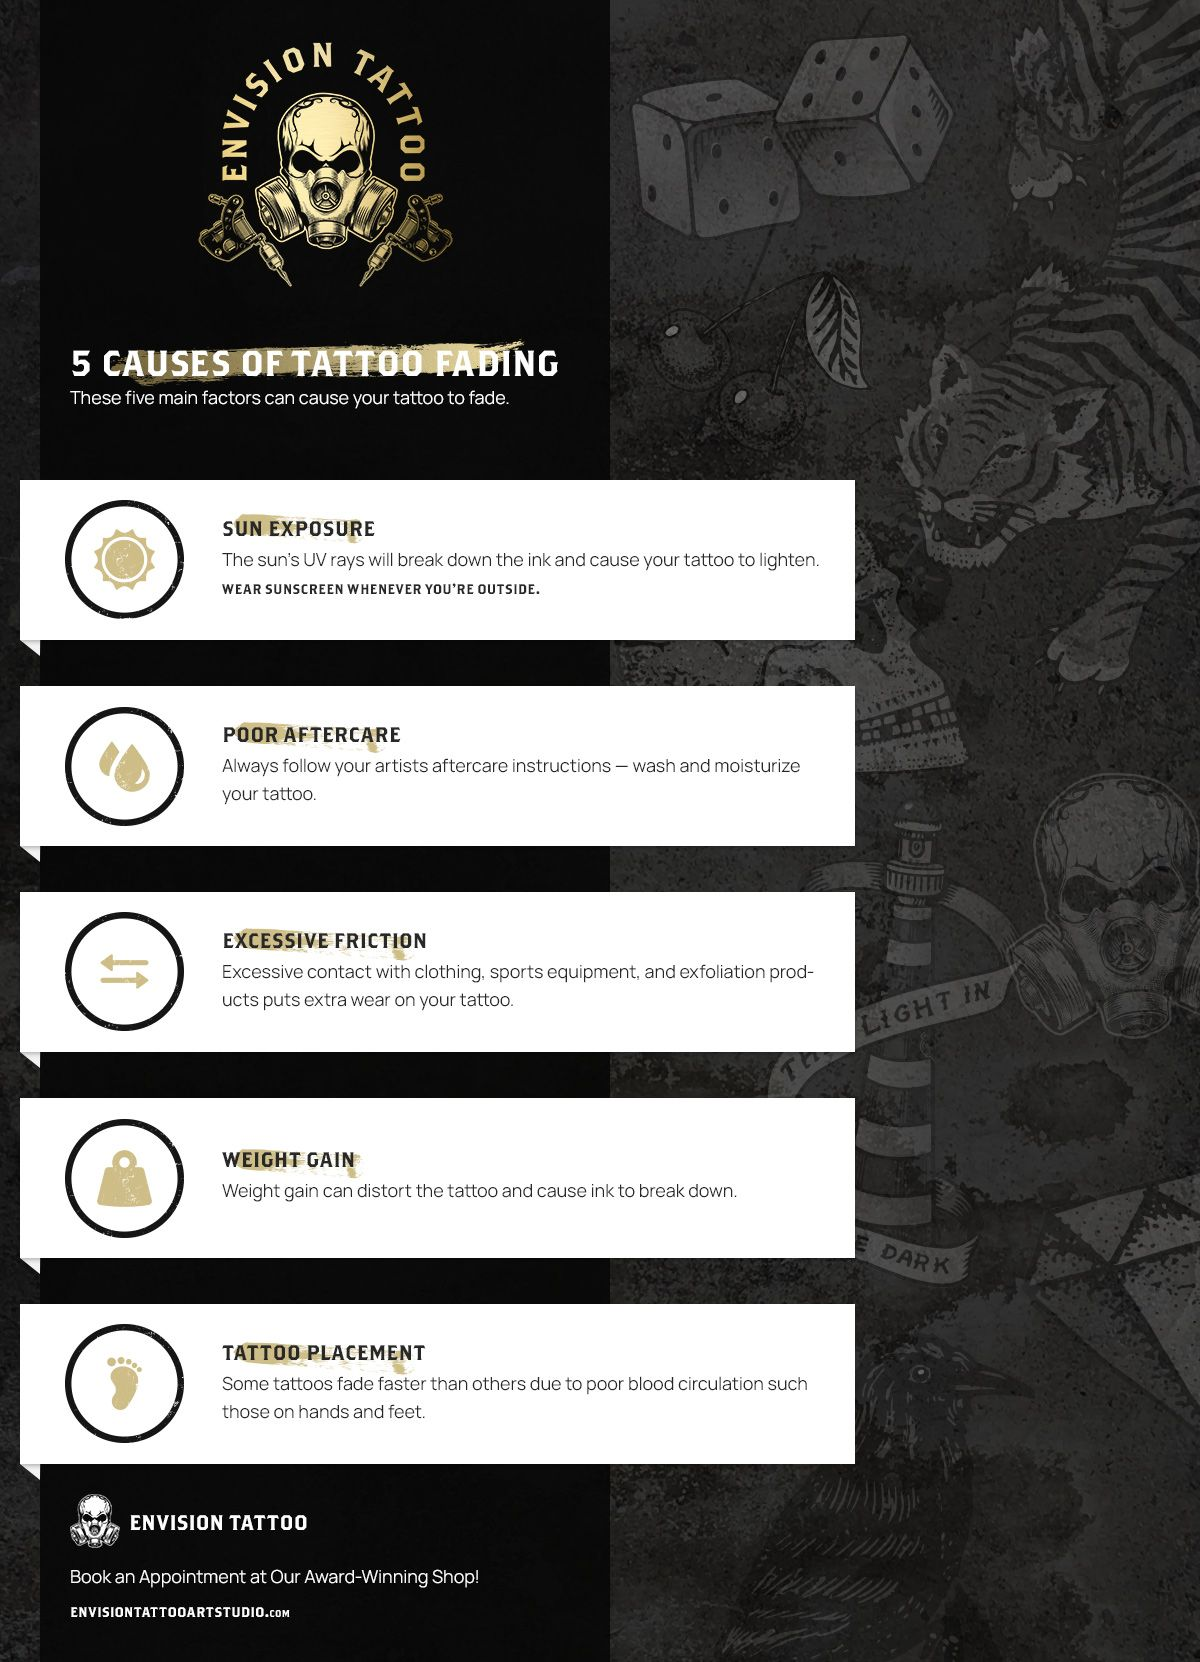 5 Causes of Tattoo Fading - Infographic.jpg